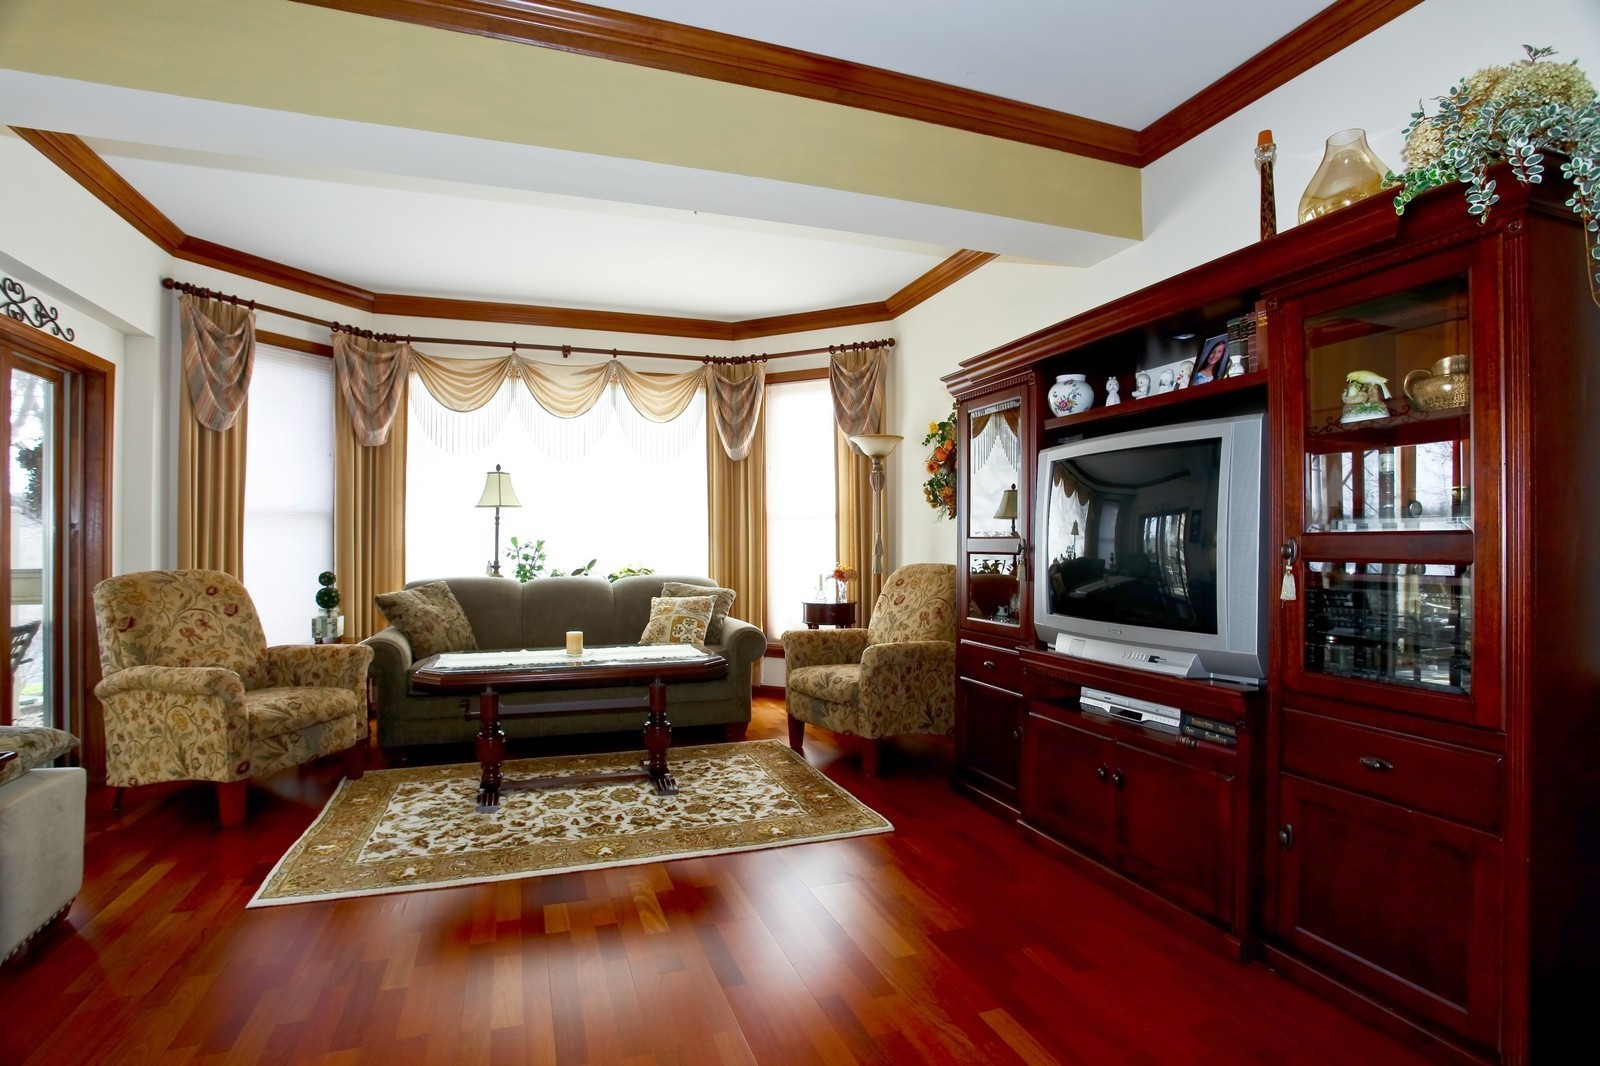 Real Estate Photography - 100 N River Ln, Geneva, IL, 60134 - Living Room